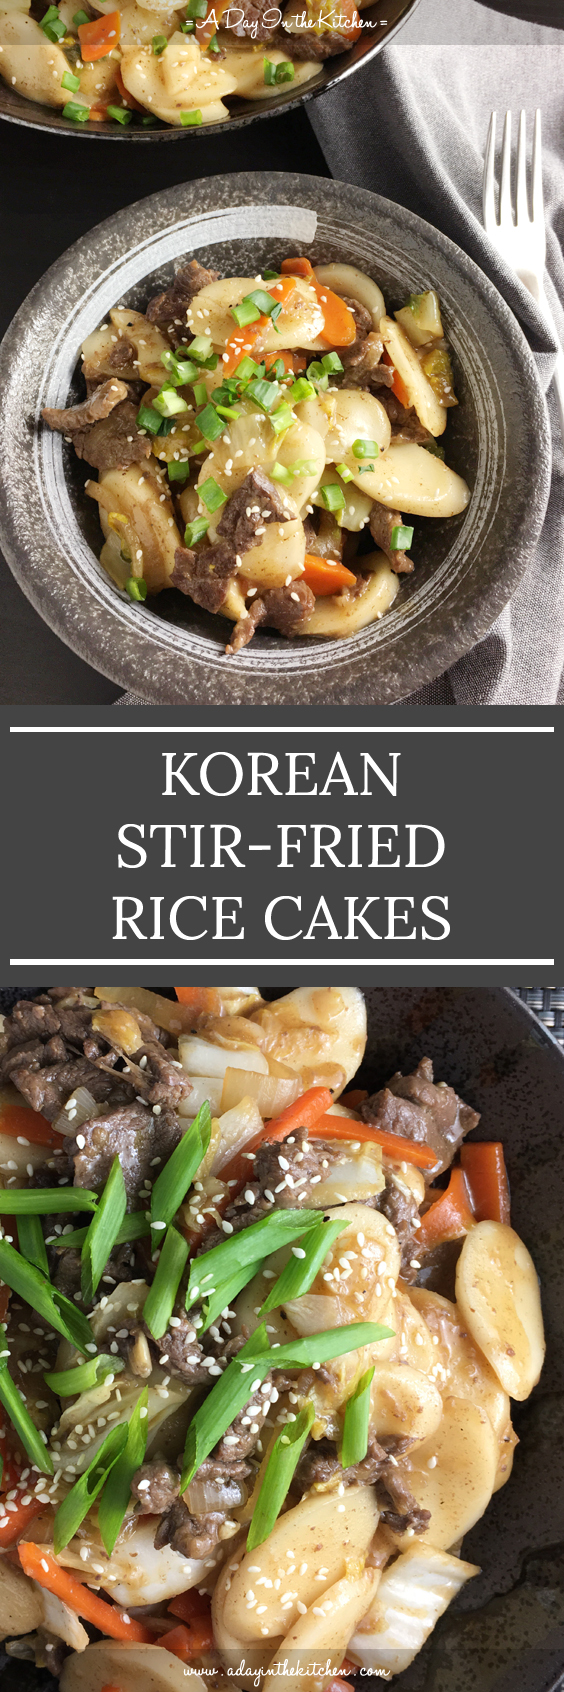 Korean Stir Fried Rice Cakes A Day In The Kitchen